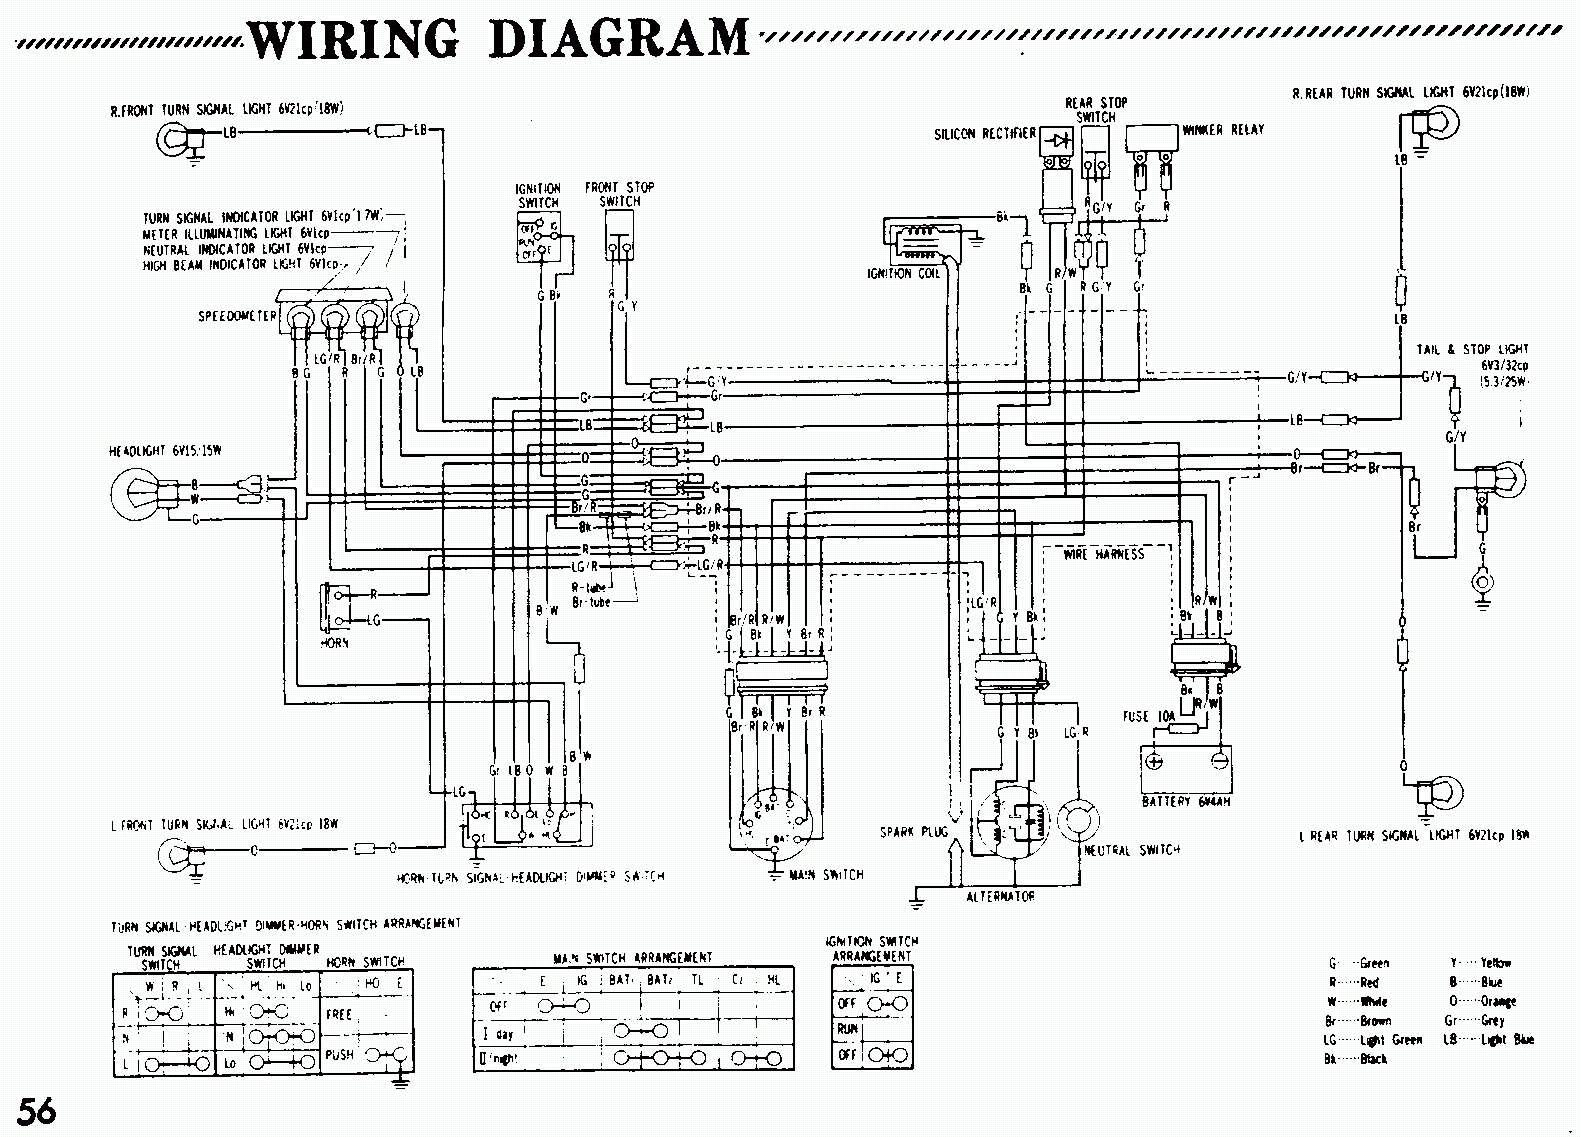 Honda Electrical Wiring Diagrams On 1970 Honda 70 Wiring Diagram Get on motorcycle headlight diagram, motorcycle gas tank lock, motorcycle shifter diagram, motorcycle tow hitches, motorcycle battery diagram, motorcycle magneto diagram, motorcycle foot controls diagram, motorcycle harness diagram, electric motorcycle diagram, motorcycle relay diagram, motorcycle body diagram, motorcycle brakes diagram, schematic diagram, motorcycle fuel reserve, motorcycle stator diagram, motorcycle carb diagram, motorcycle wire color codes, motorcycle motors diagram, motorcycle coil diagram, motorcycle maintenance diagram,